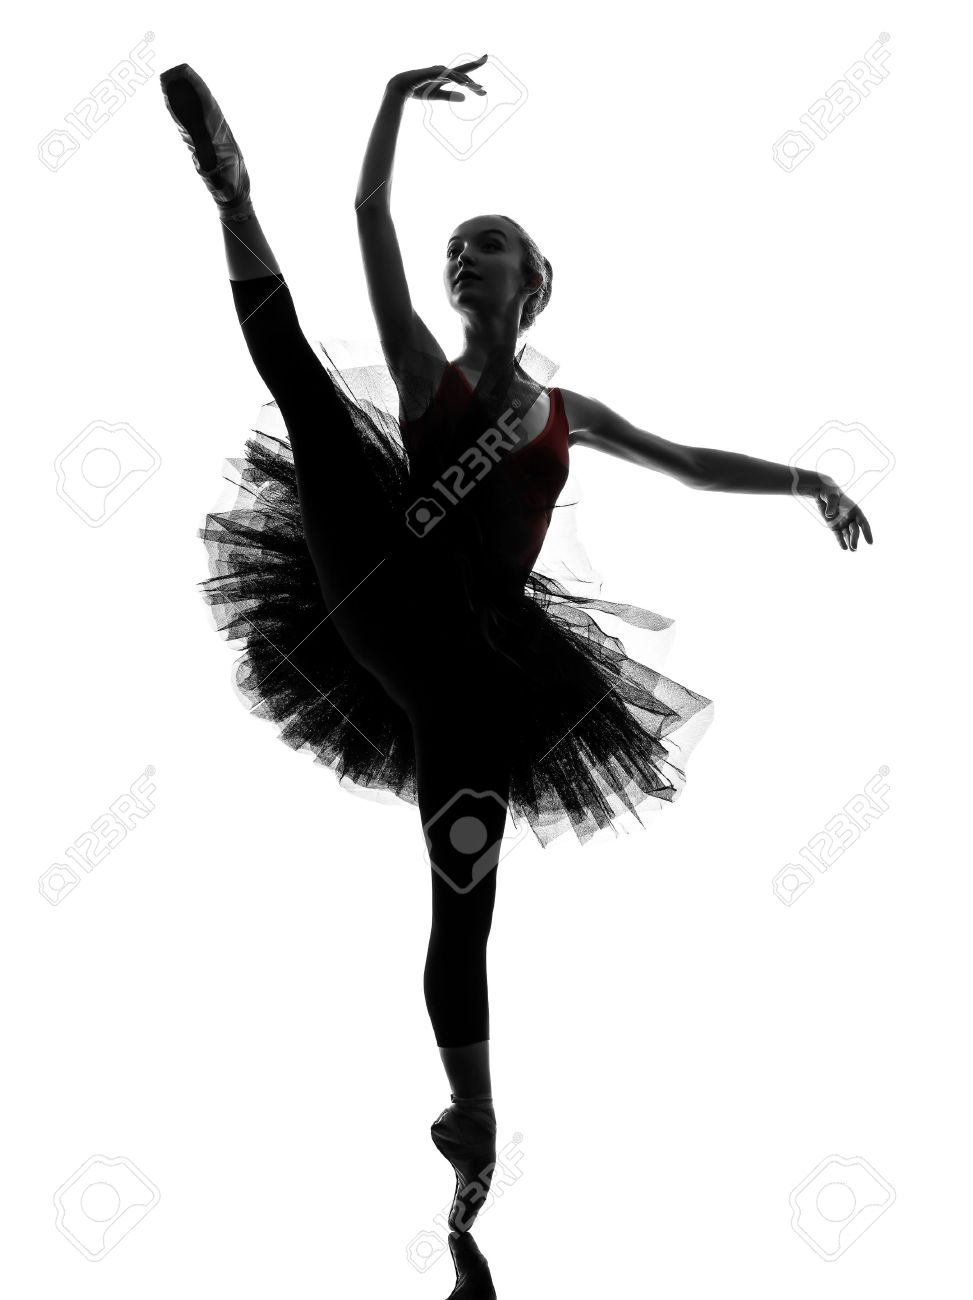 973x1300 Ballet Dancer Silhouette Images Amp Stock Pictures. Royalty Free